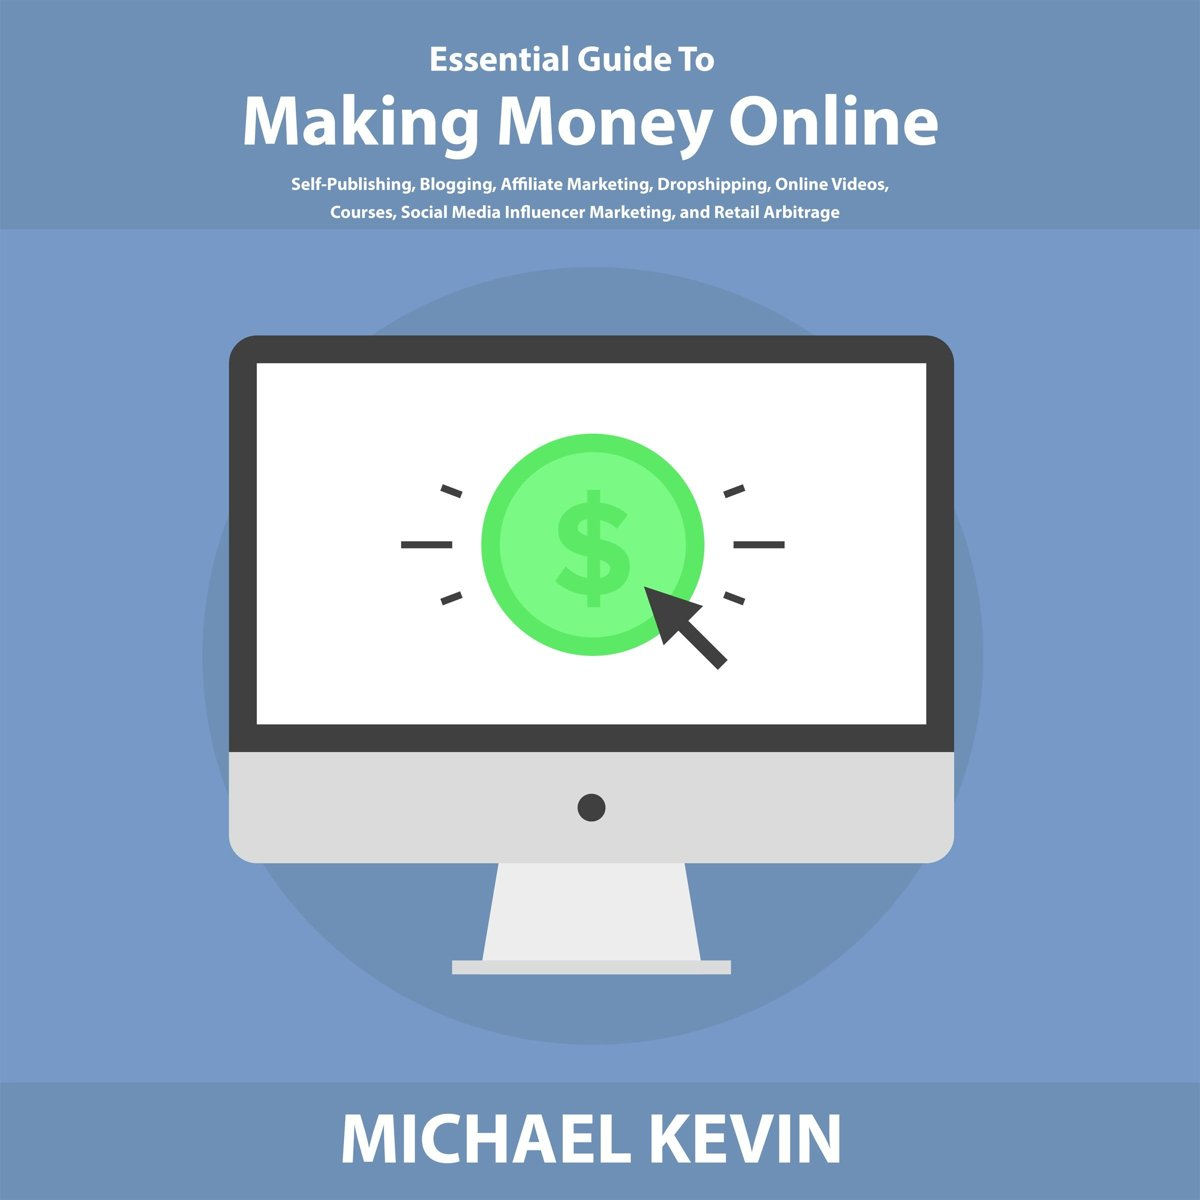 Essential Guide to Making Money Online